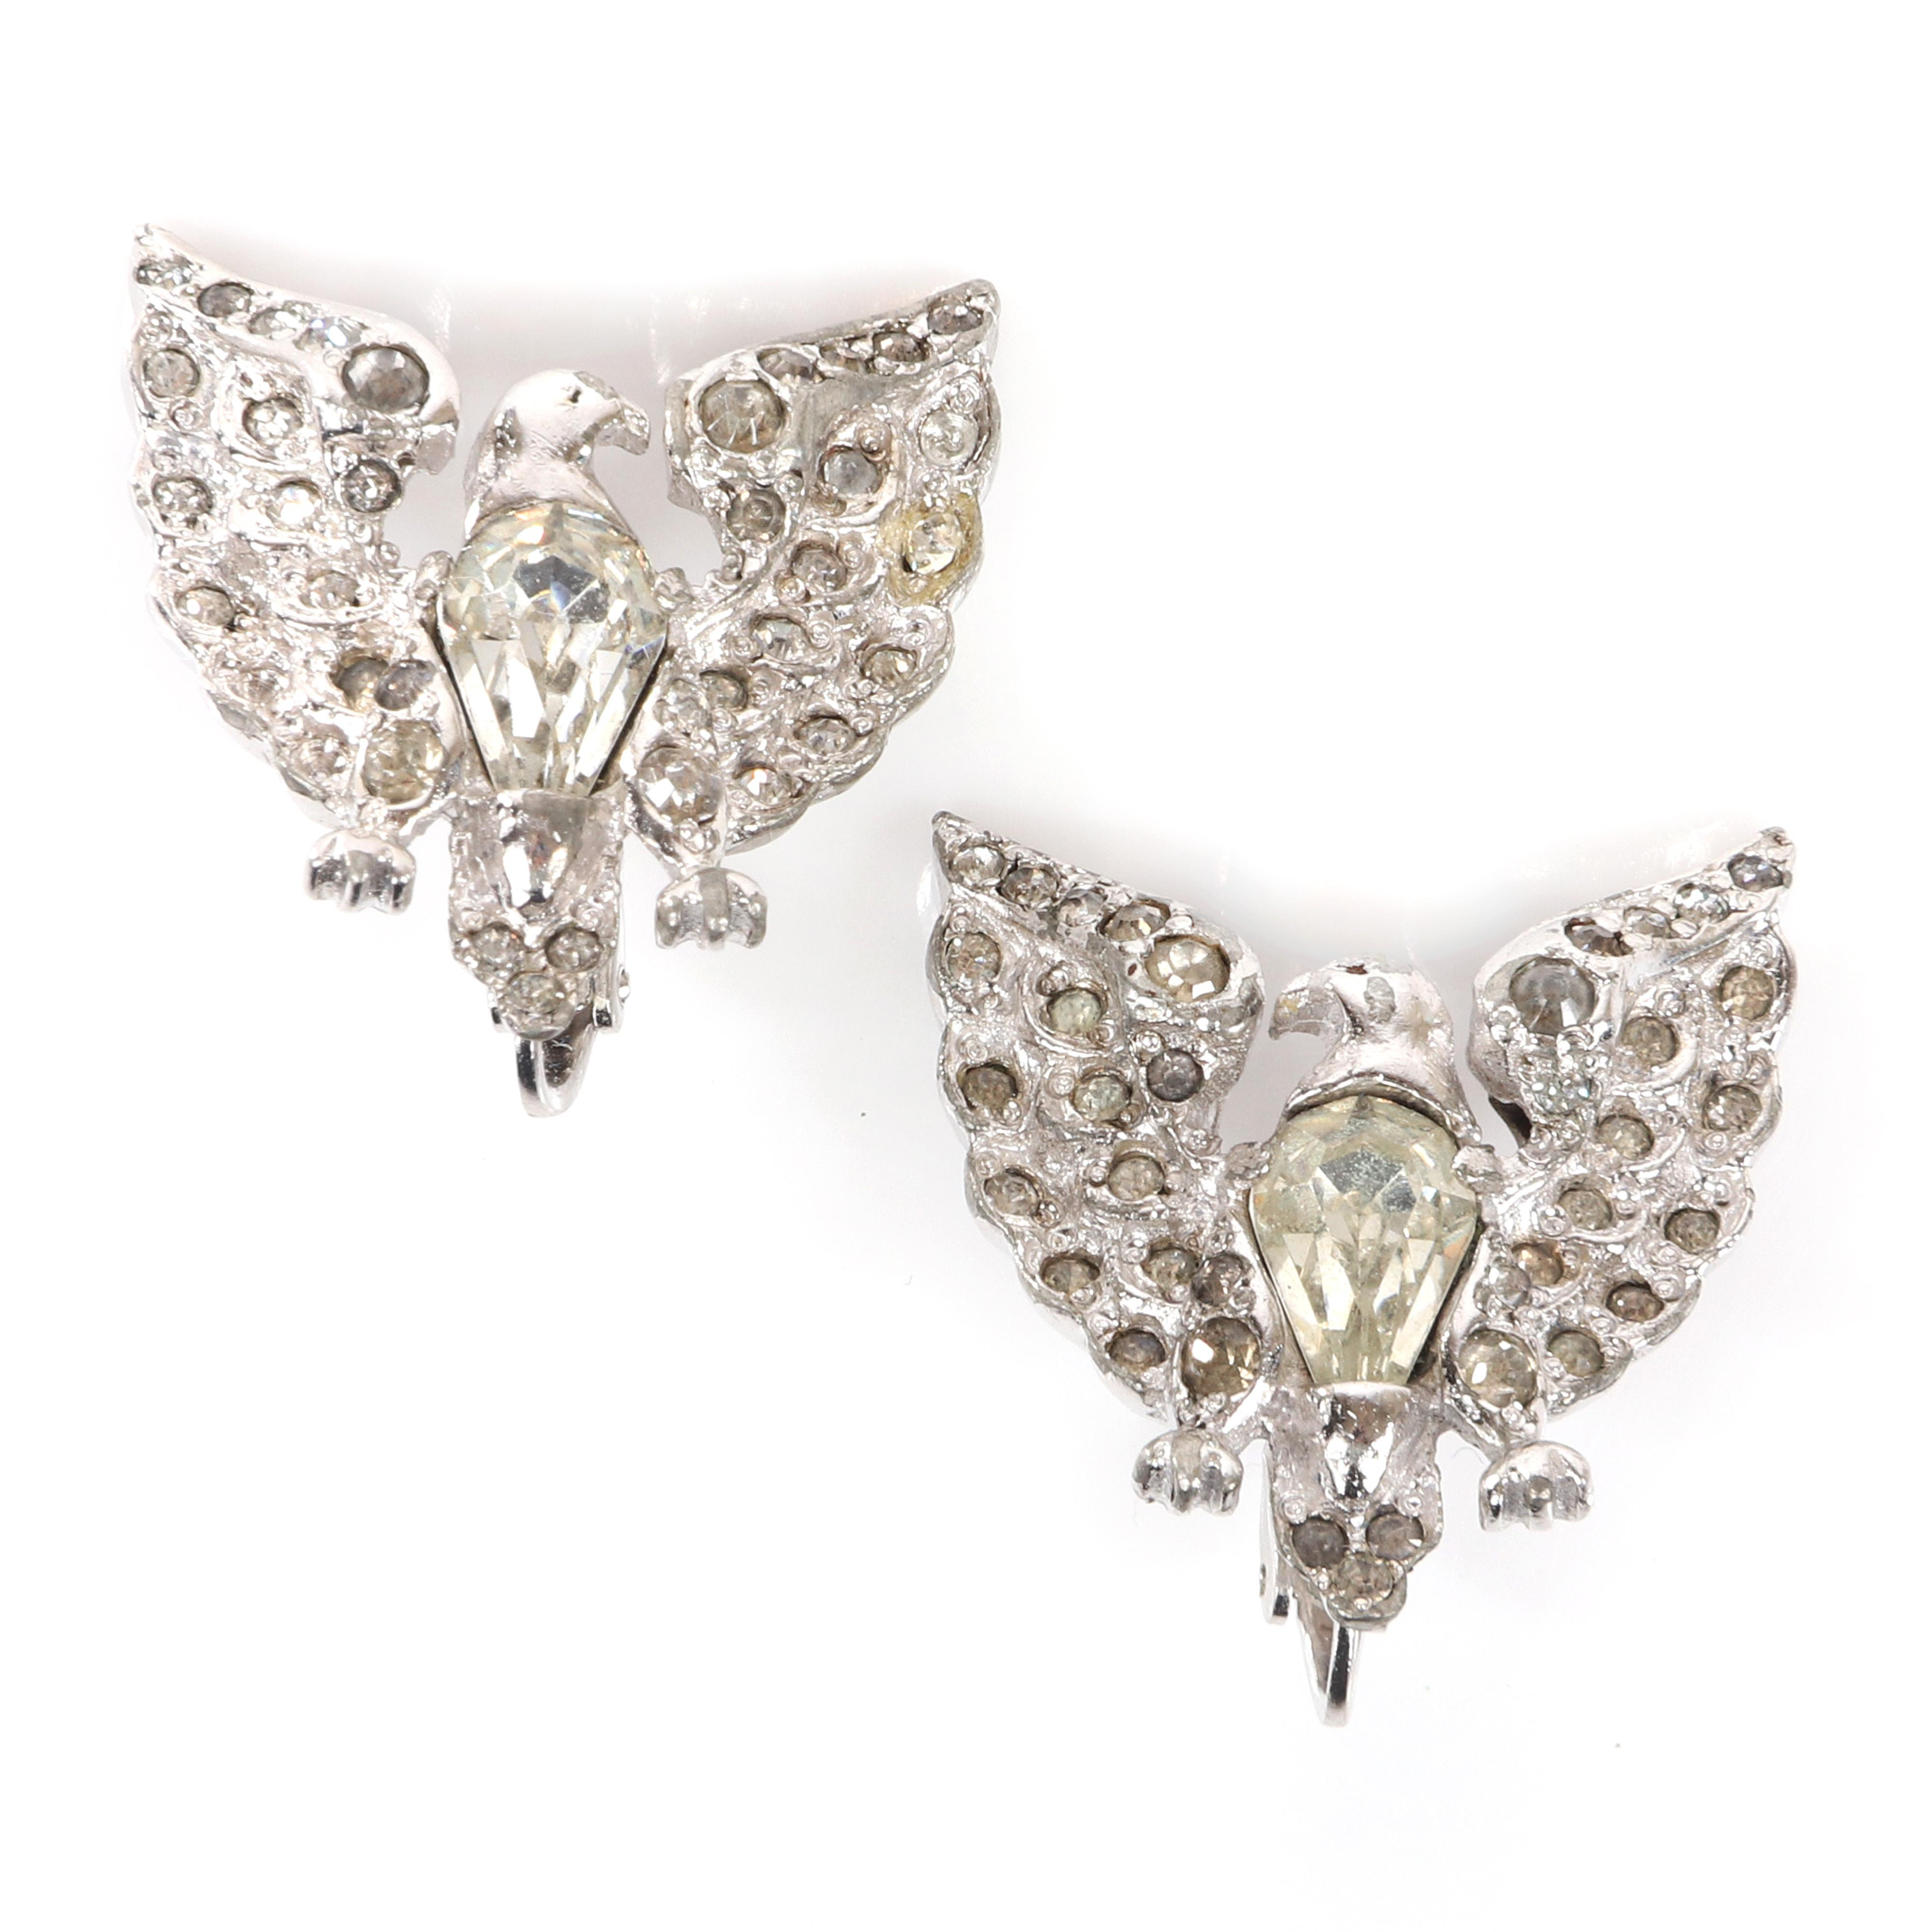 """Eisenberg Original rare iconic eagle earrings with rhodium base and pear-shaped bezel-set stones and pave on wings, page 156, figure 6.24. 1 1/4"""" x 1"""""""